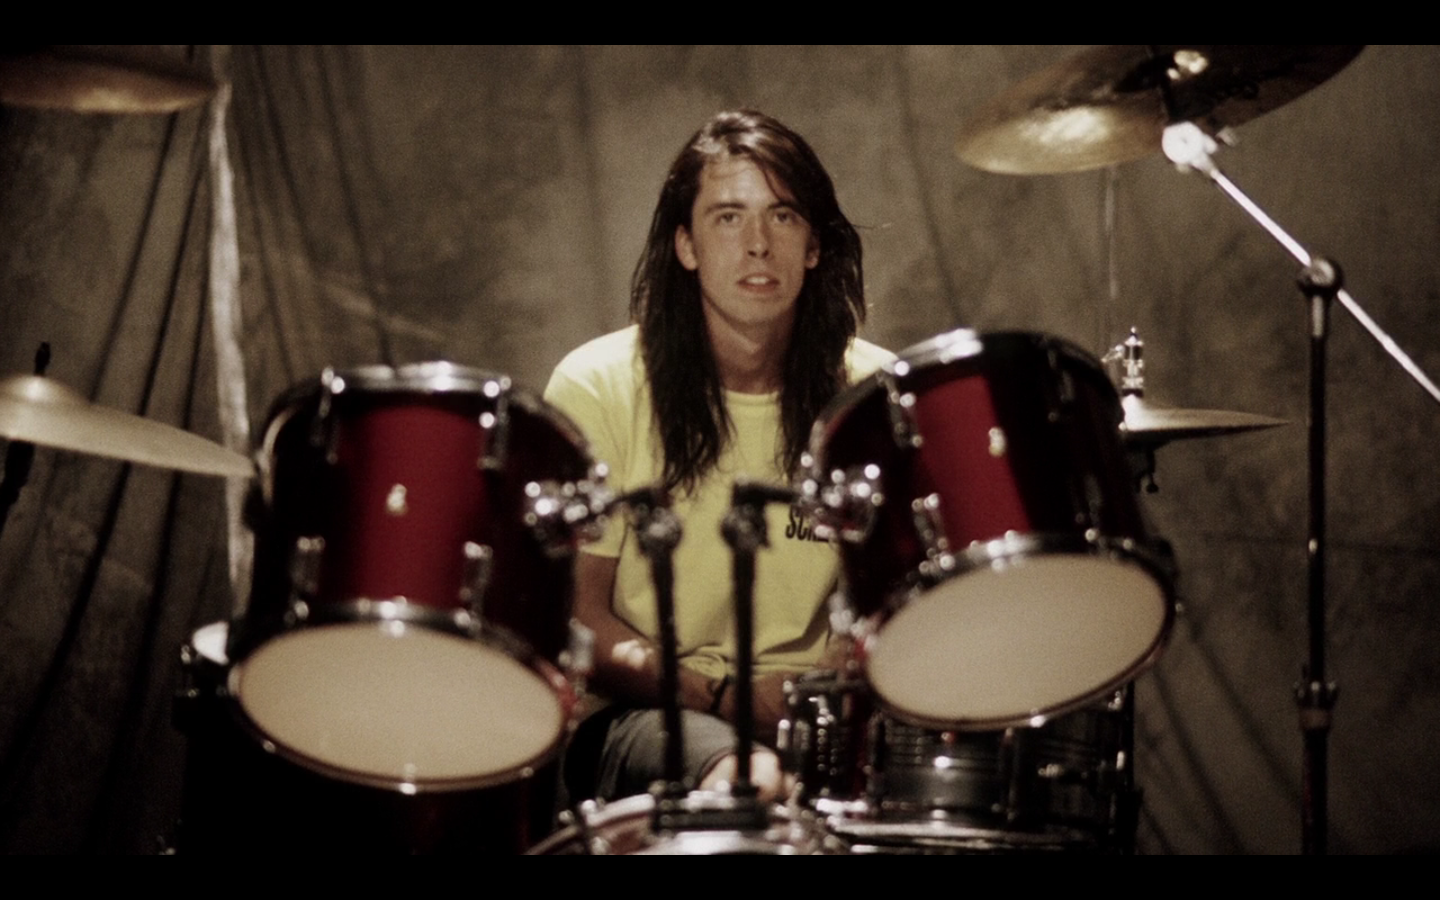 Dave Grohl Releases 'Hooker on the Street' from Nirvana Era [AUDIO]